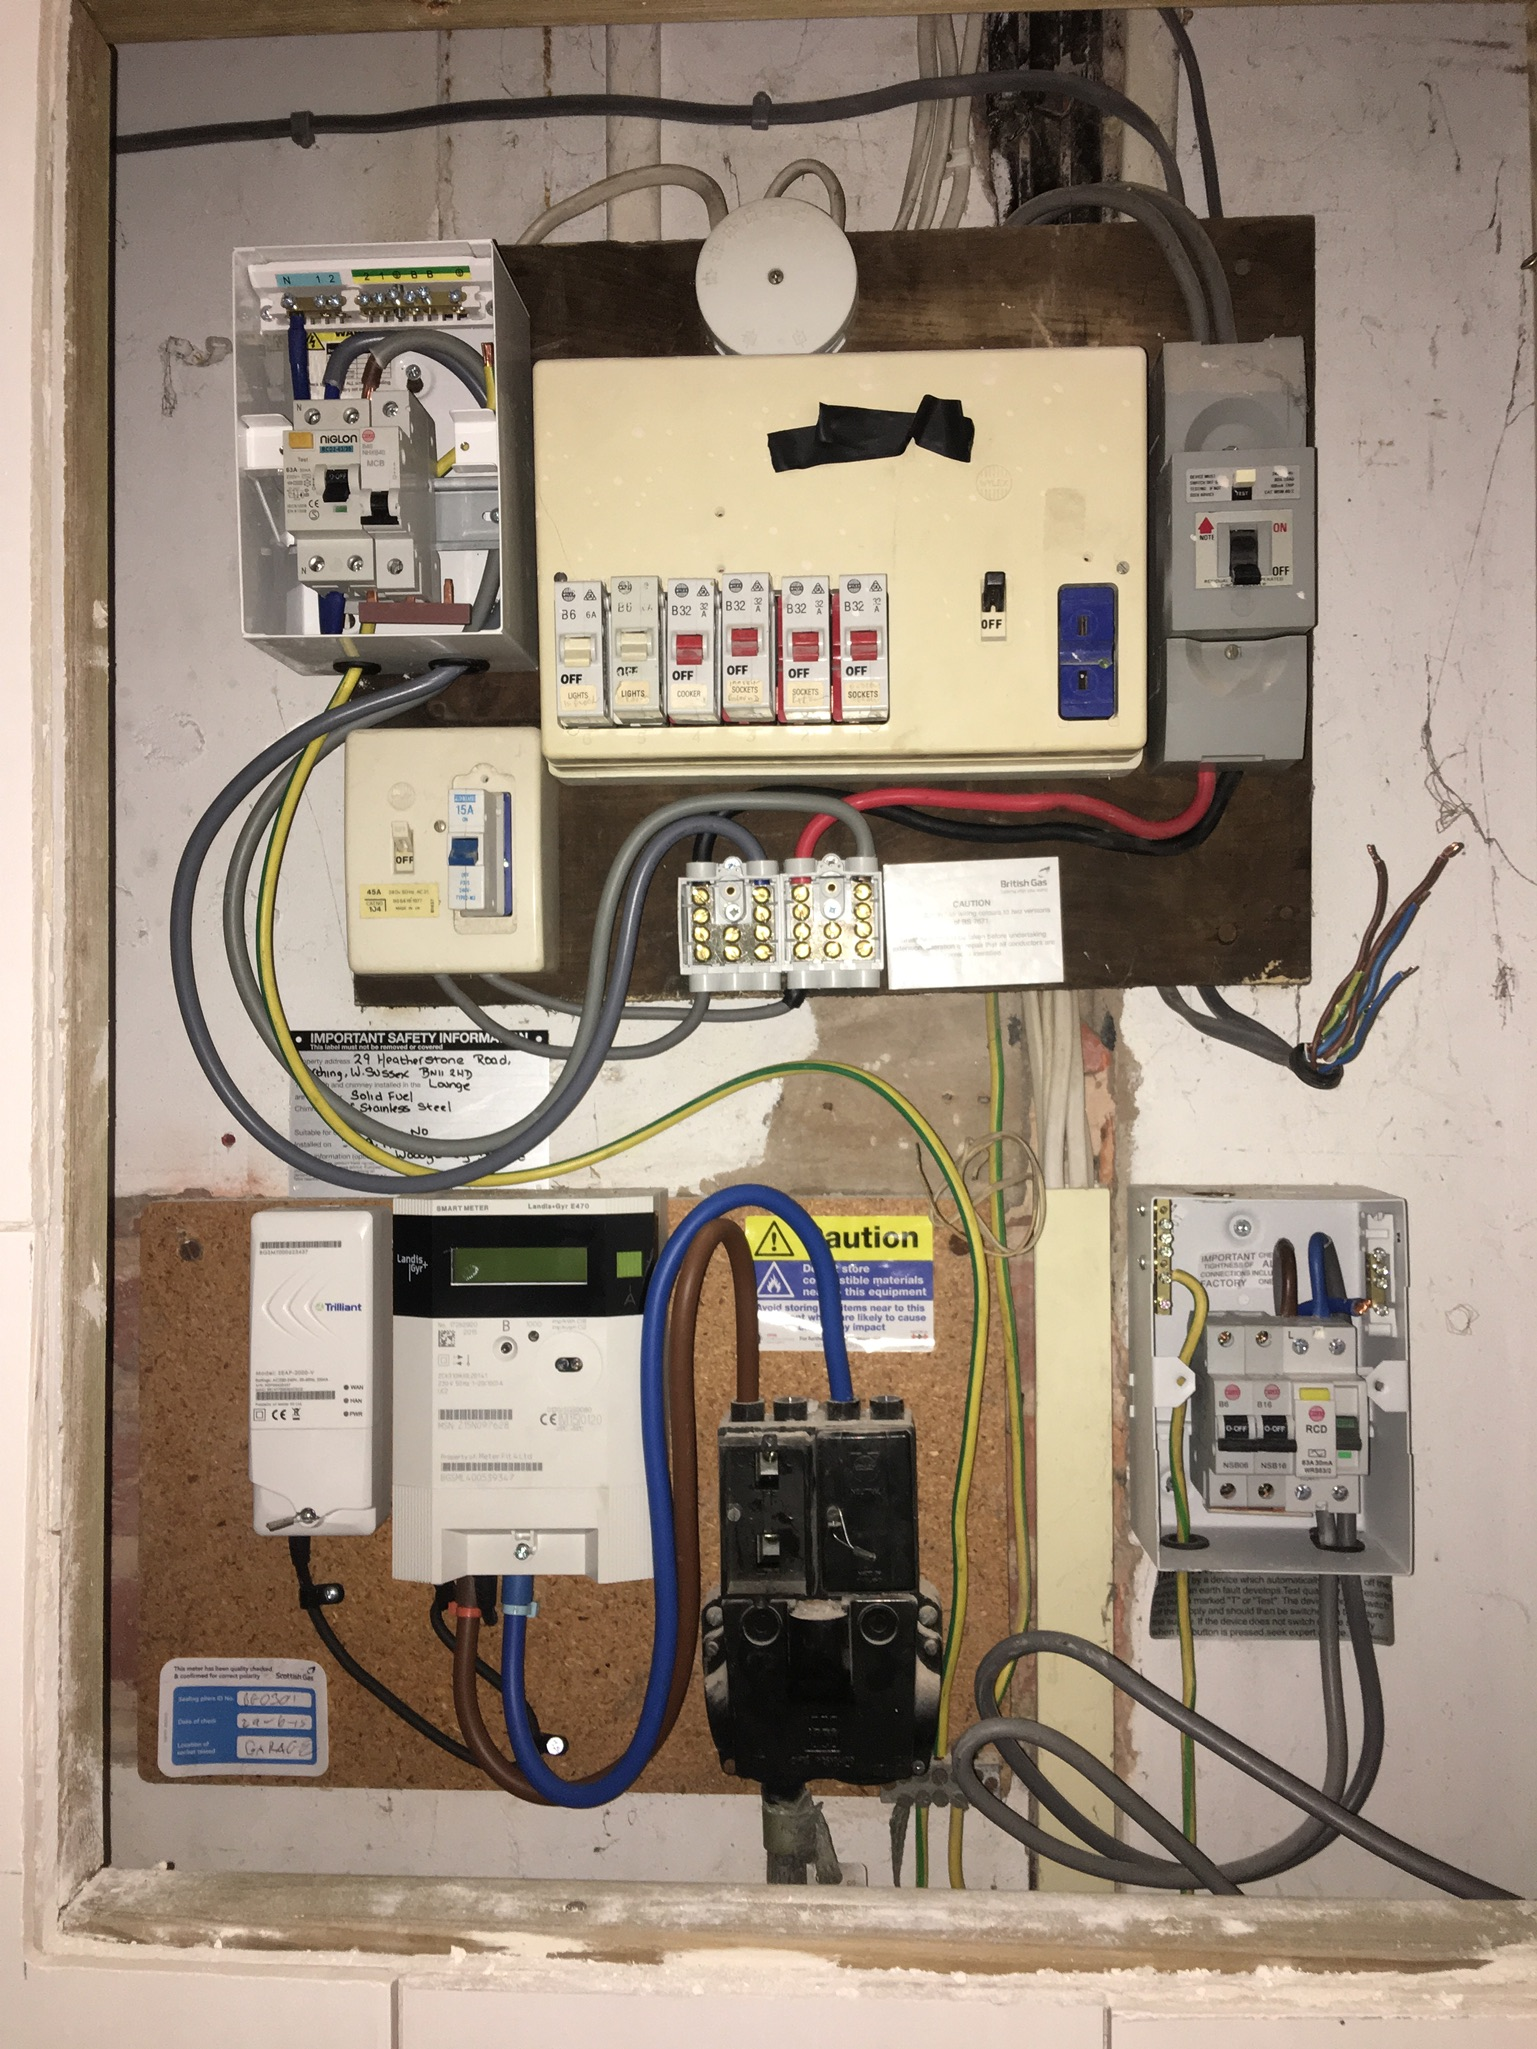 case study installation of kitchen under lights, bathroom spot fuse box location replacement fuse box × ×